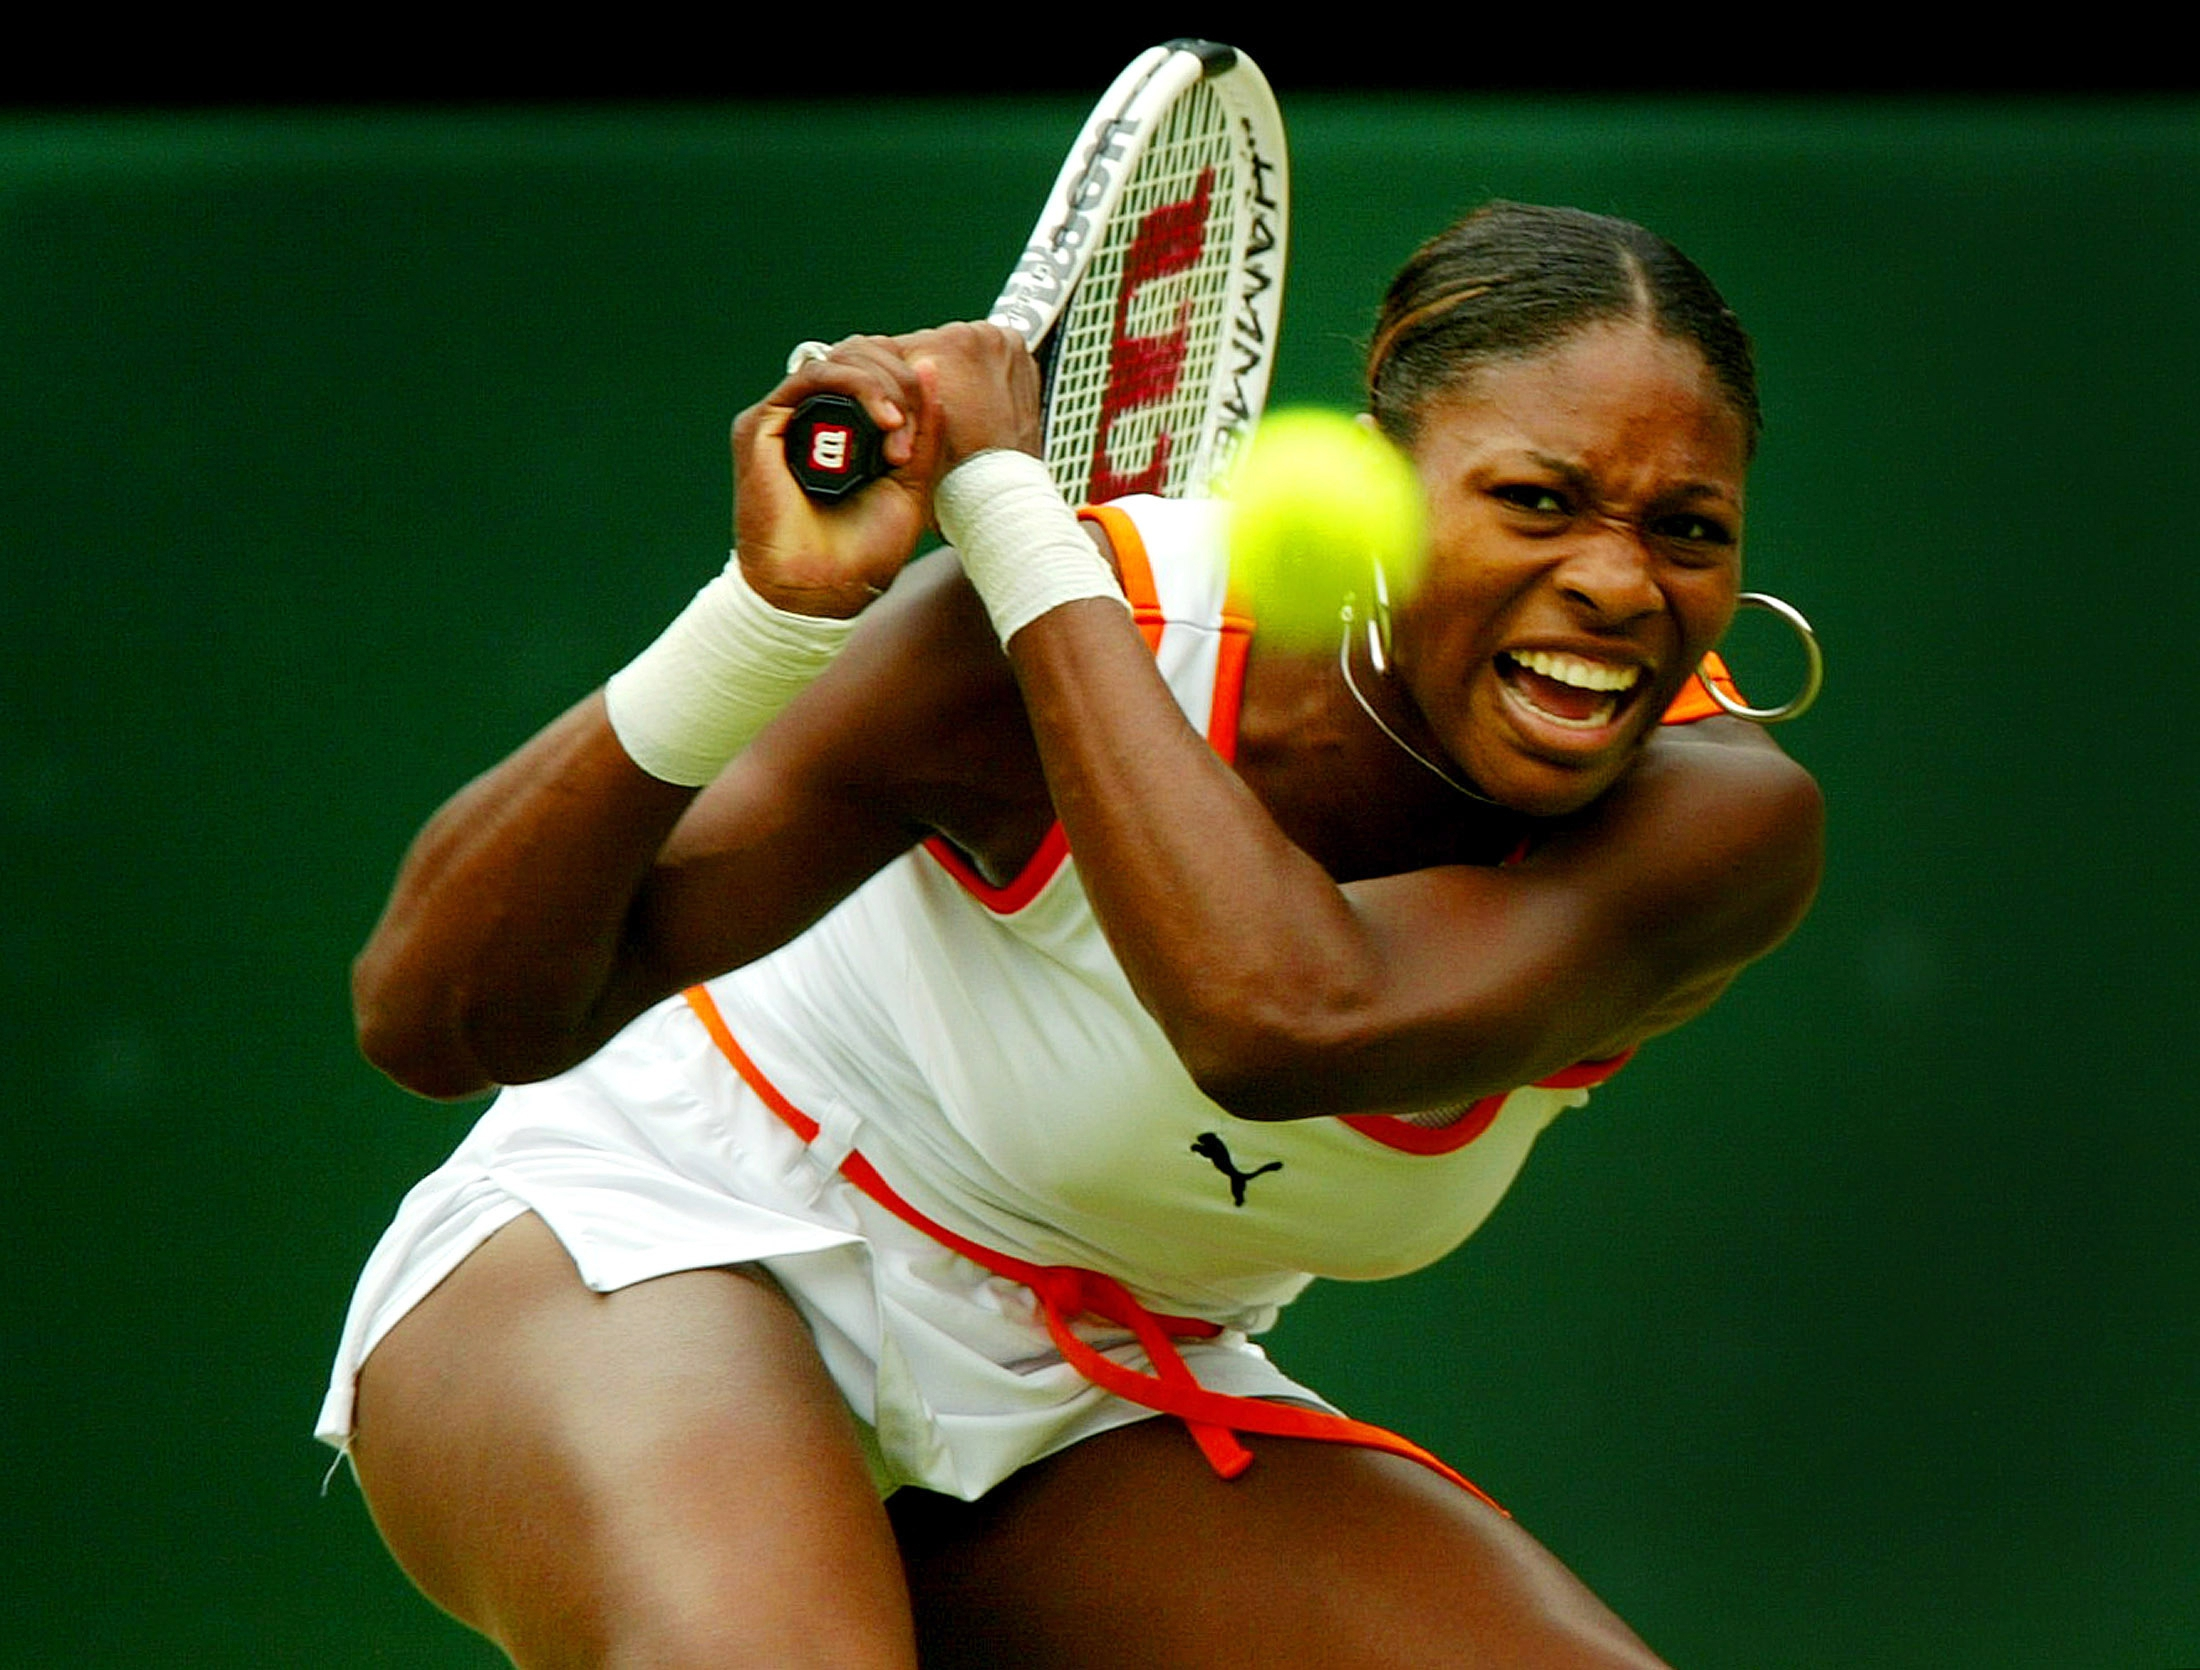 Serena Williams Nuce Pictures Free 64